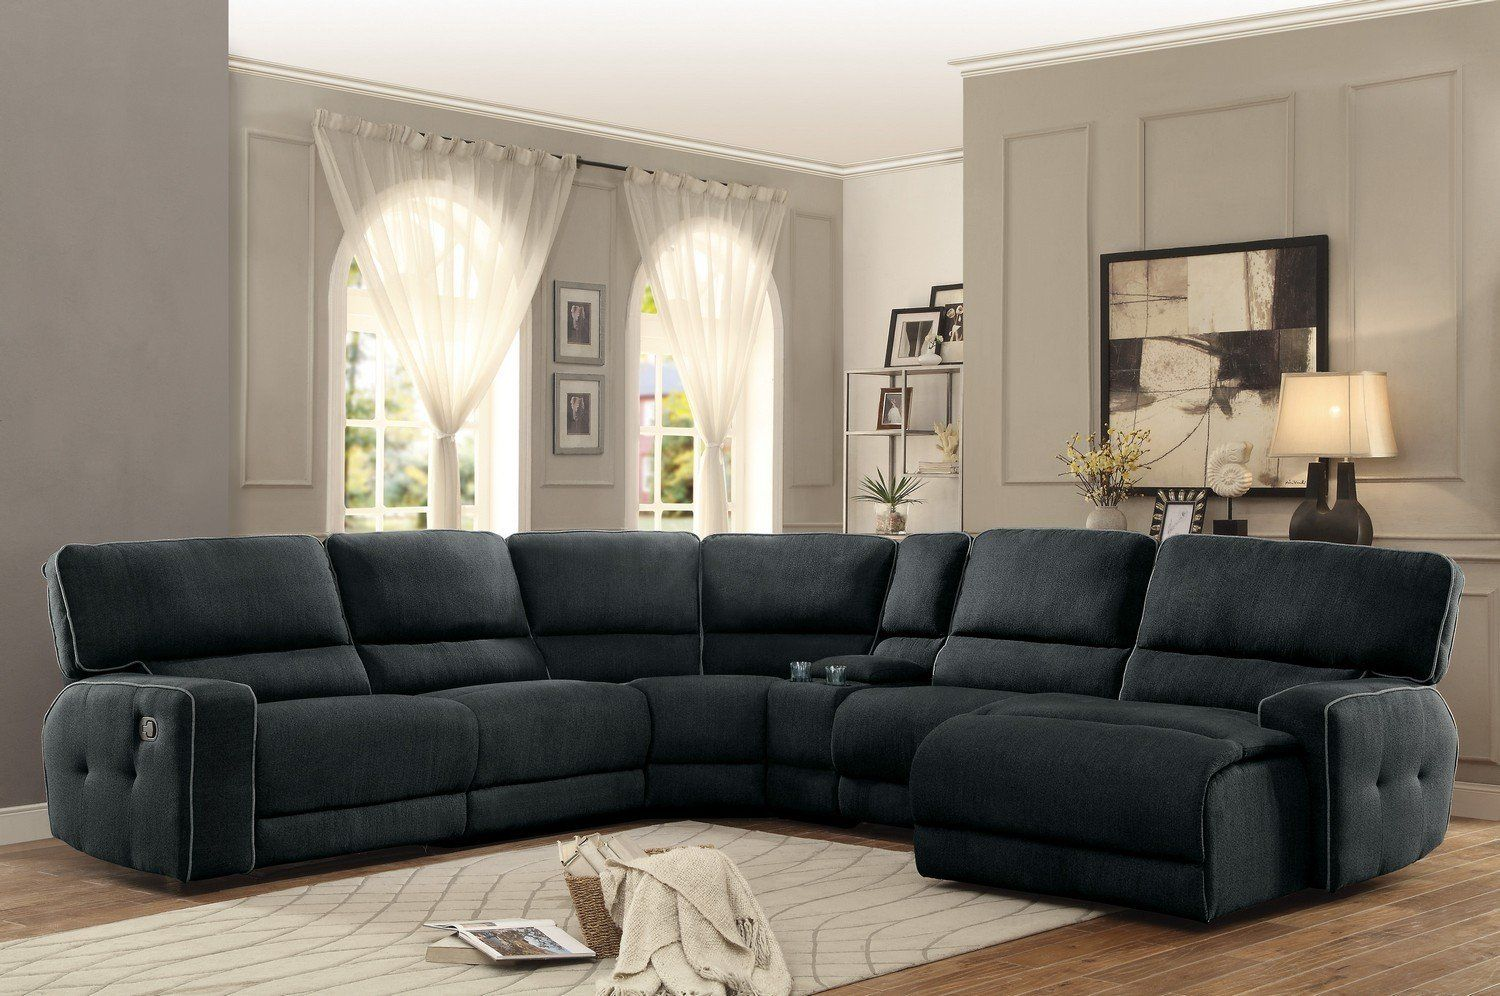 sectional couches with recliners and chaise inside keamey dark grey fabric oversized reclining sectional sofa set chaise